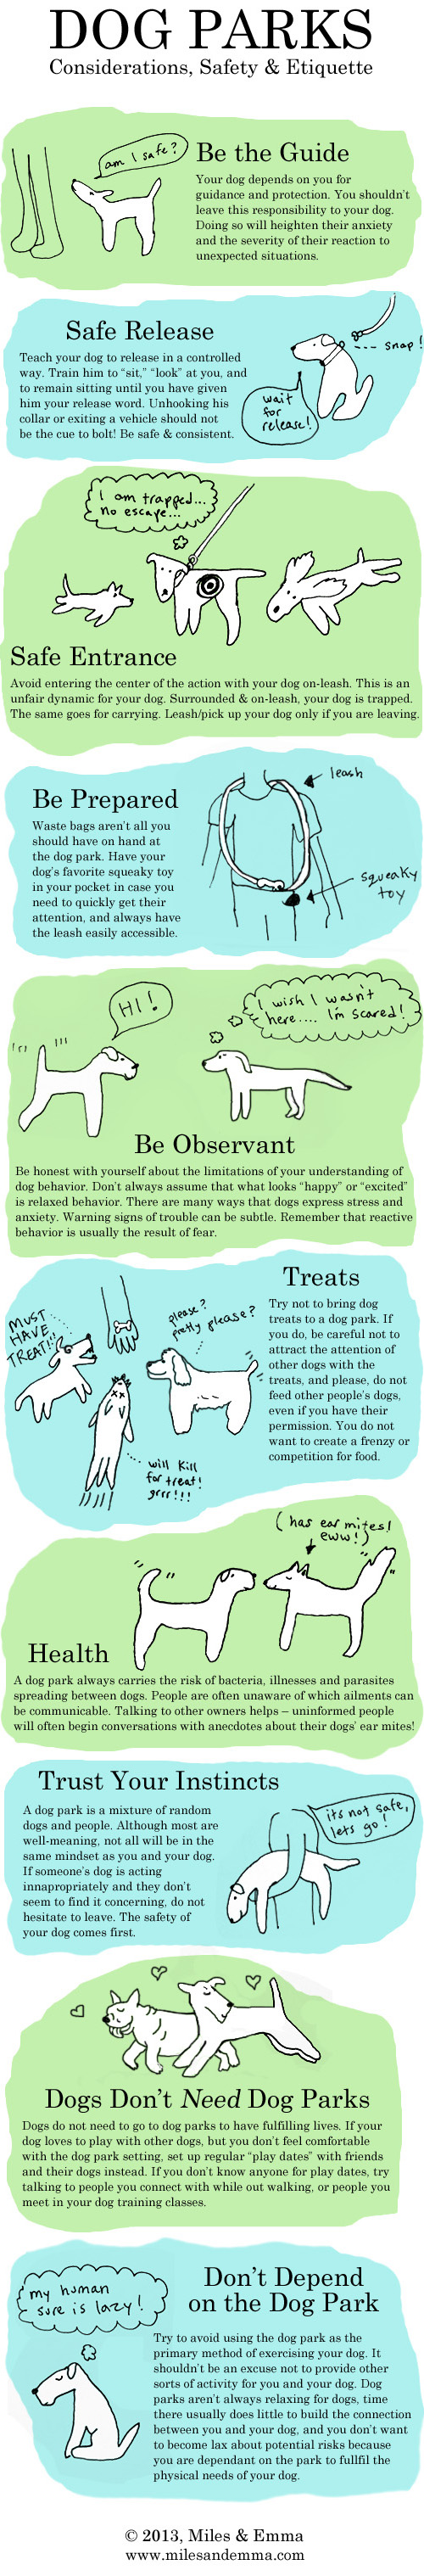 Dog Parks: Considerations, Safety & Etiquette